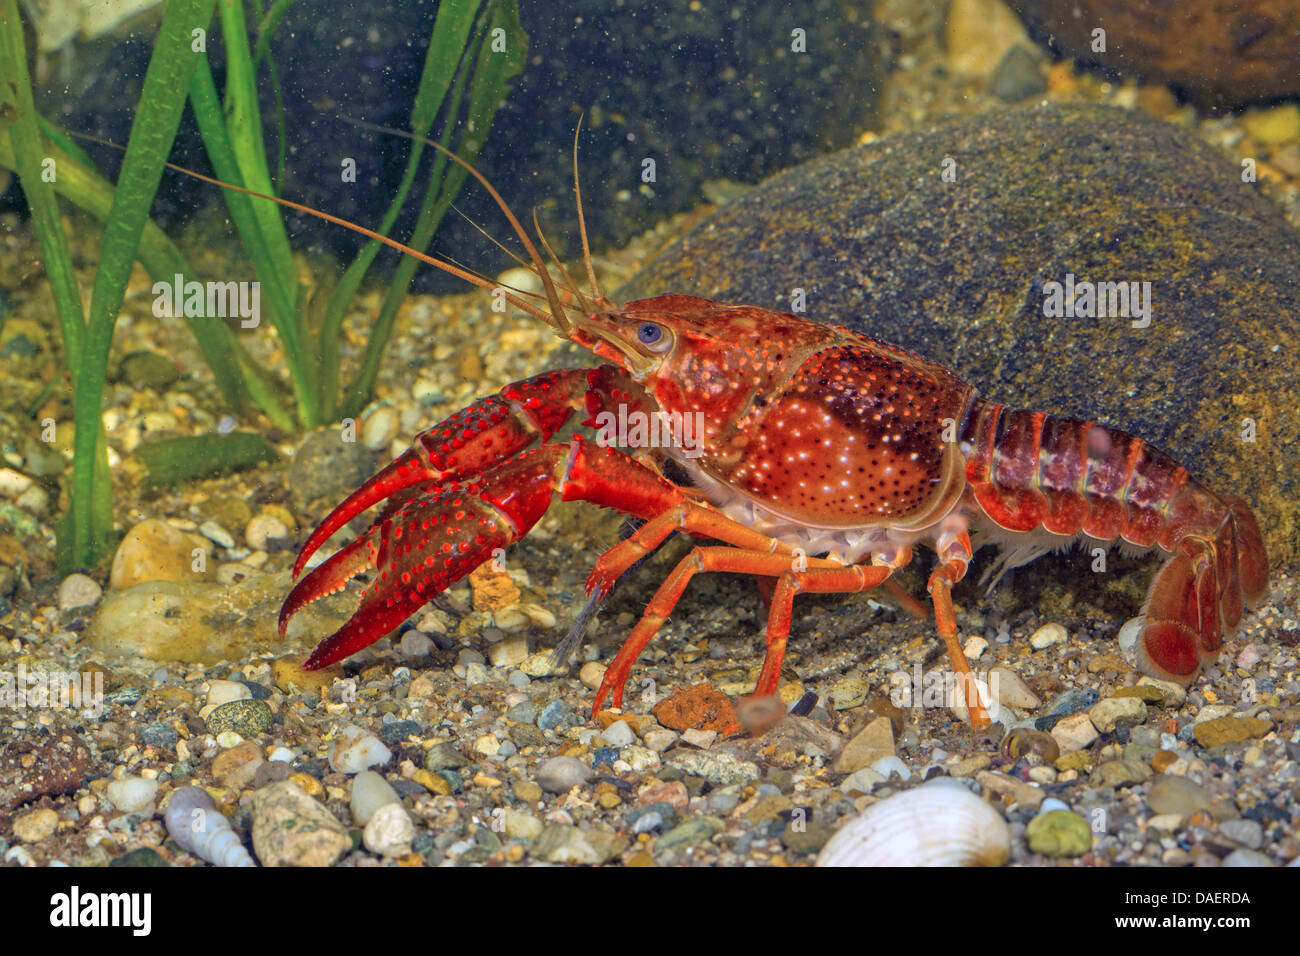 behaviors of the red swamp crayfish procambarus clarkii Red swamp crayfish ( procambarus clarkii , girard 1852) and common carp ( cyprinus carpio , l 1758)  hydrolysis characteristics negligible hydrolysis at 25°c at ph 5 negligible hydrolysis at 25°c at ph 7 half-life = 25 days at 25°c at ph 9 photolysis characteristics deltamethrin is directly phototransformed, dt 50 = 48 days, and indirectly photo-transformed, dt 50 = 4 days.